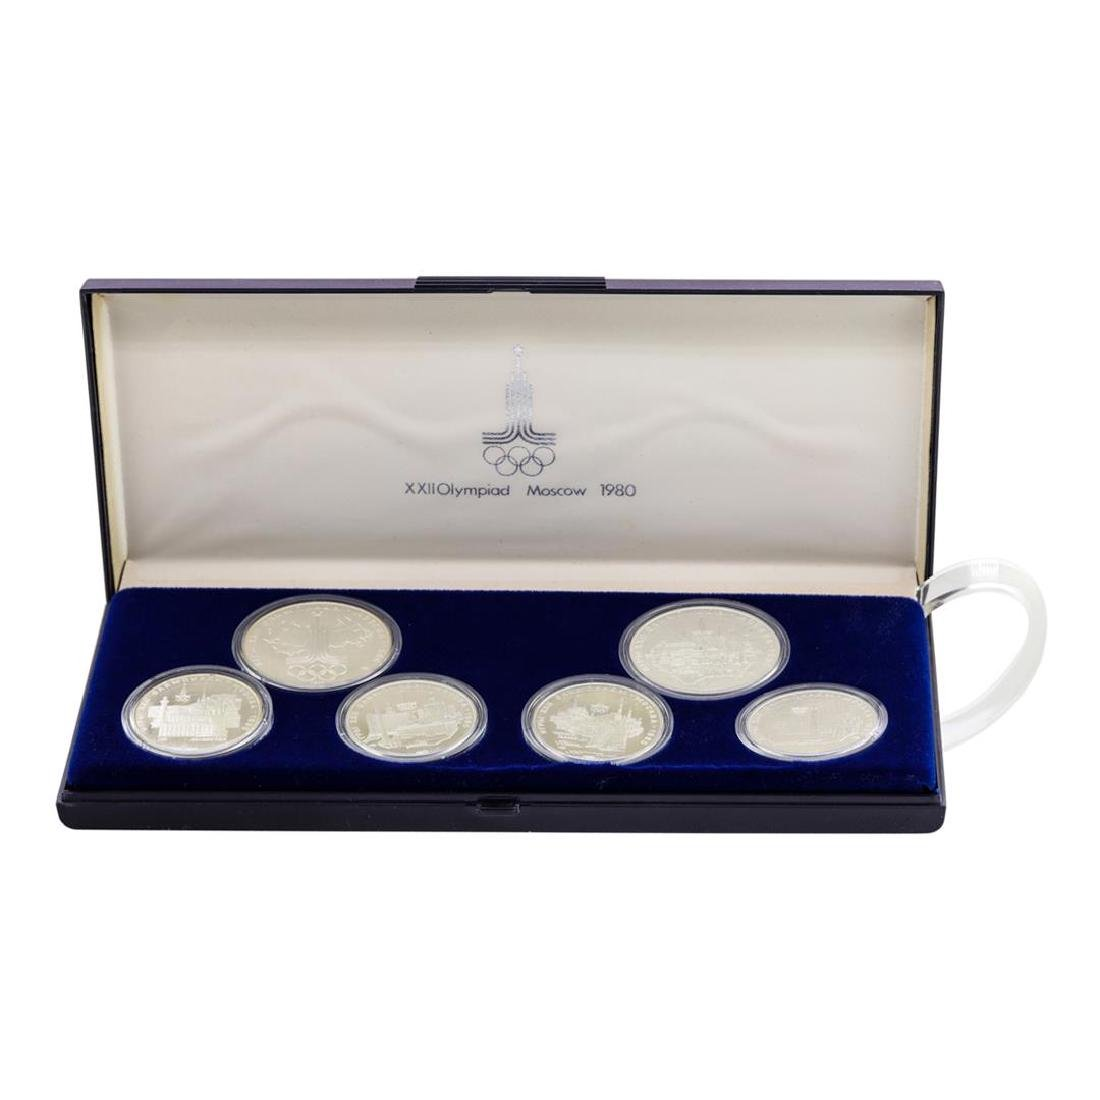 1980 Moscow Olympics (6) Coin Proof Silver Set - 2